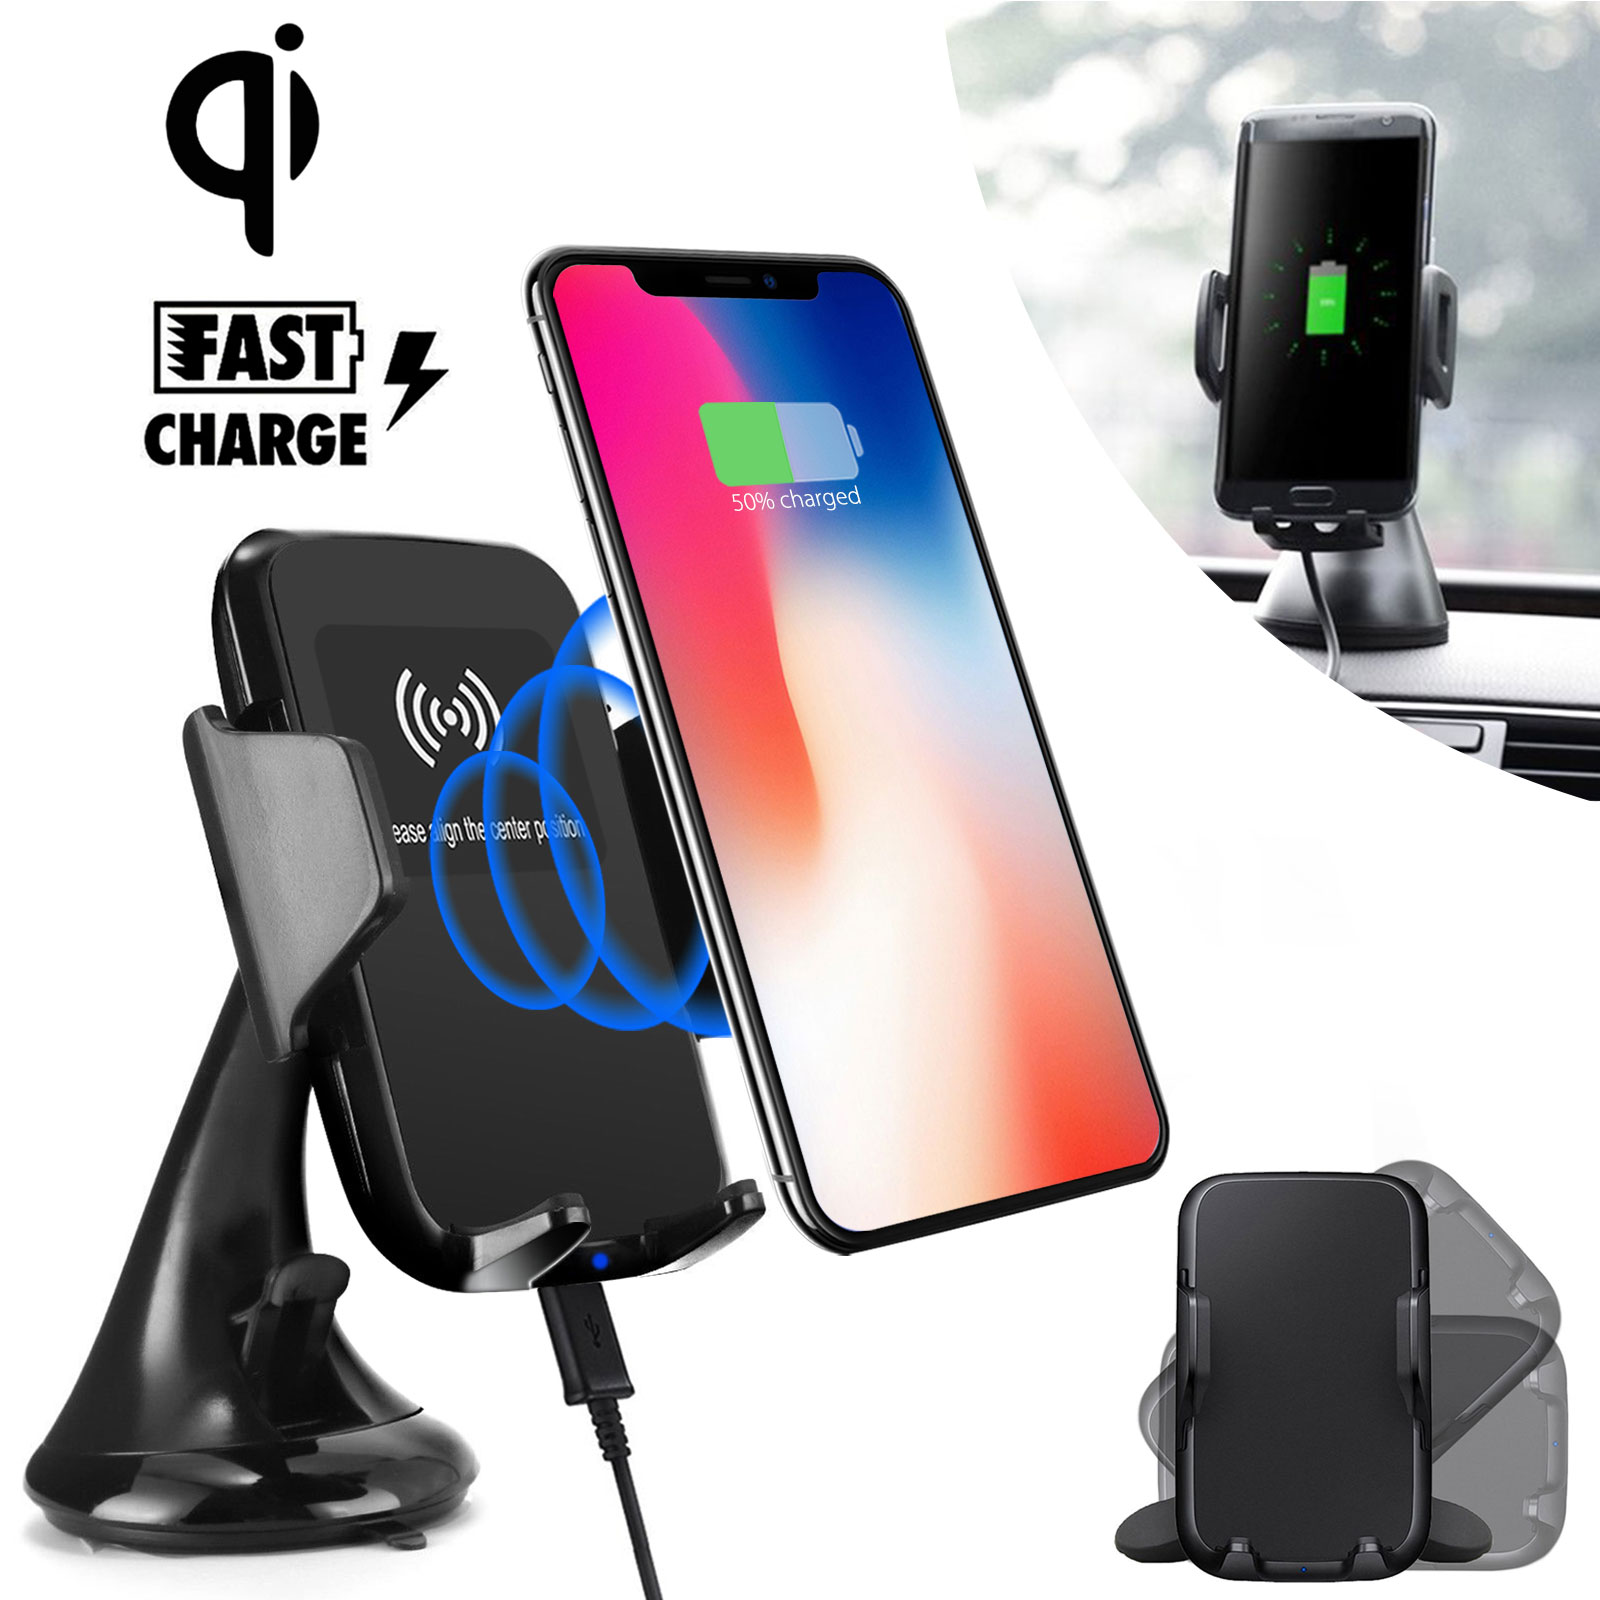 Fast Qi Wireless Car Charger Mount, Quick Charging Car Dash Board Wind Sheild Phone Holder for Samsung Galaxy Note 9 8 S10/S10E/S9/S8/S7 Edge/S10/S10E, iPhone XS/XR/ X/8 Plus and more